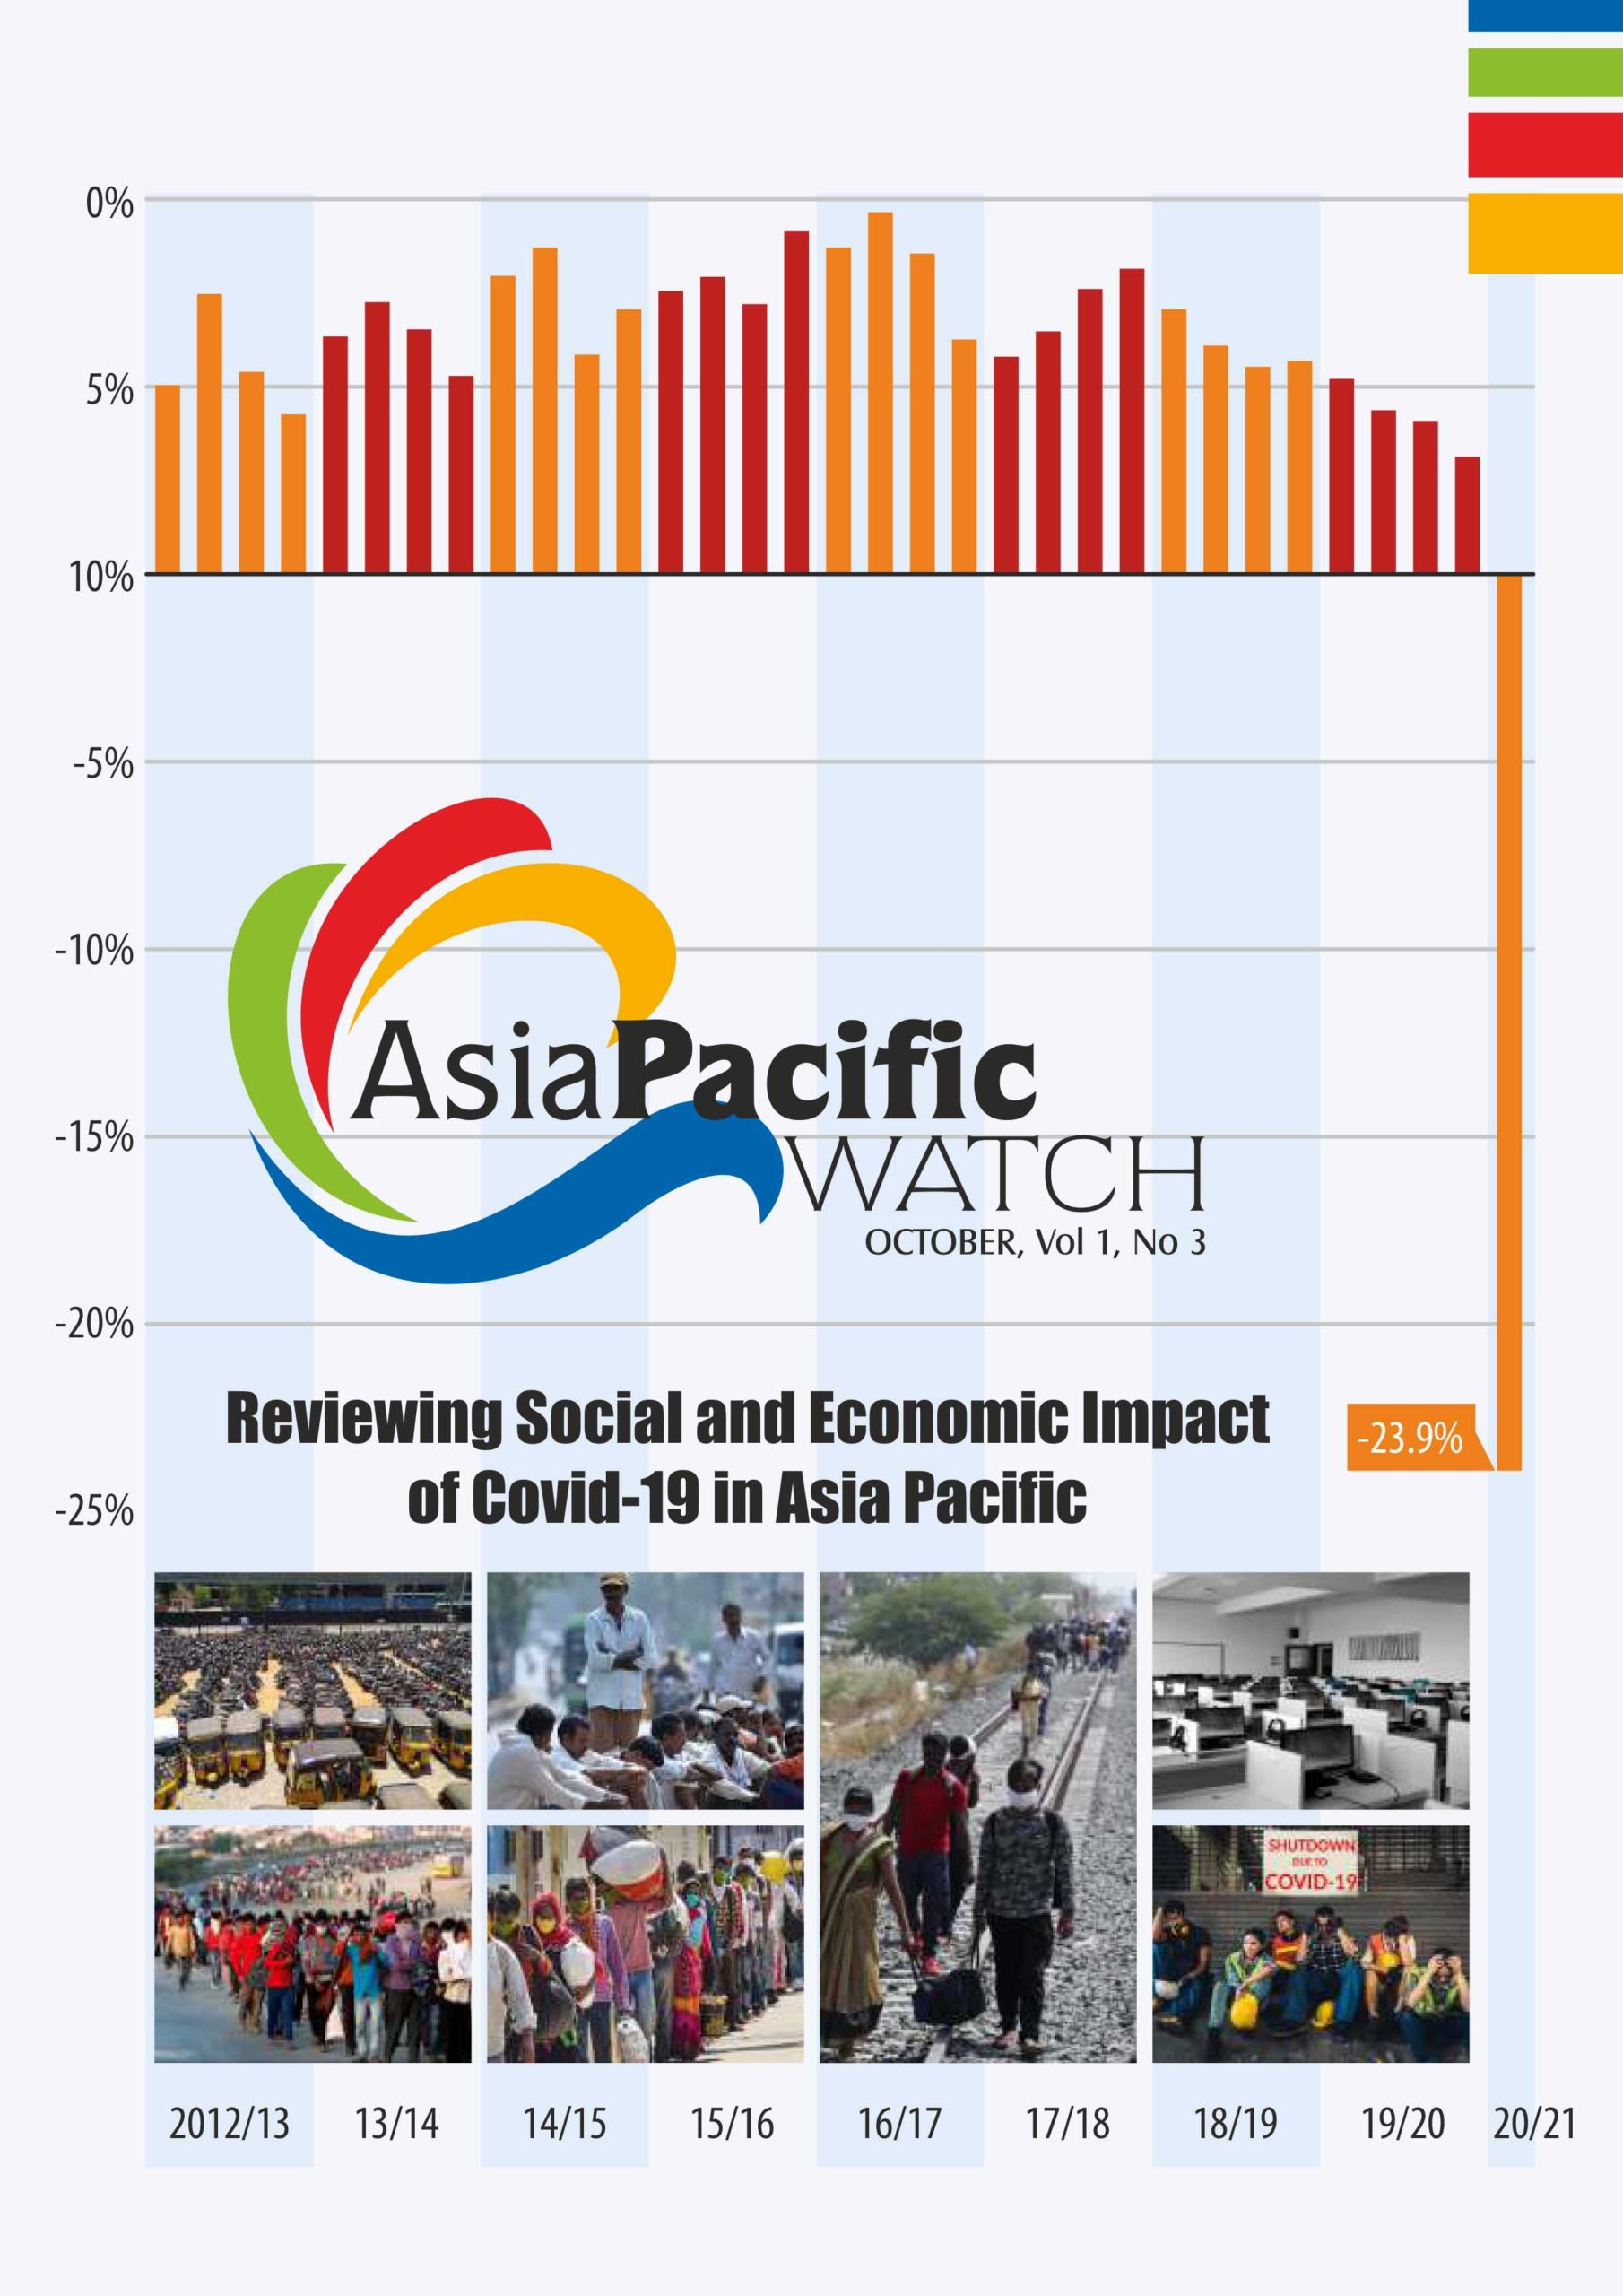 Asia Pacific Watch | October 2020 | No 3